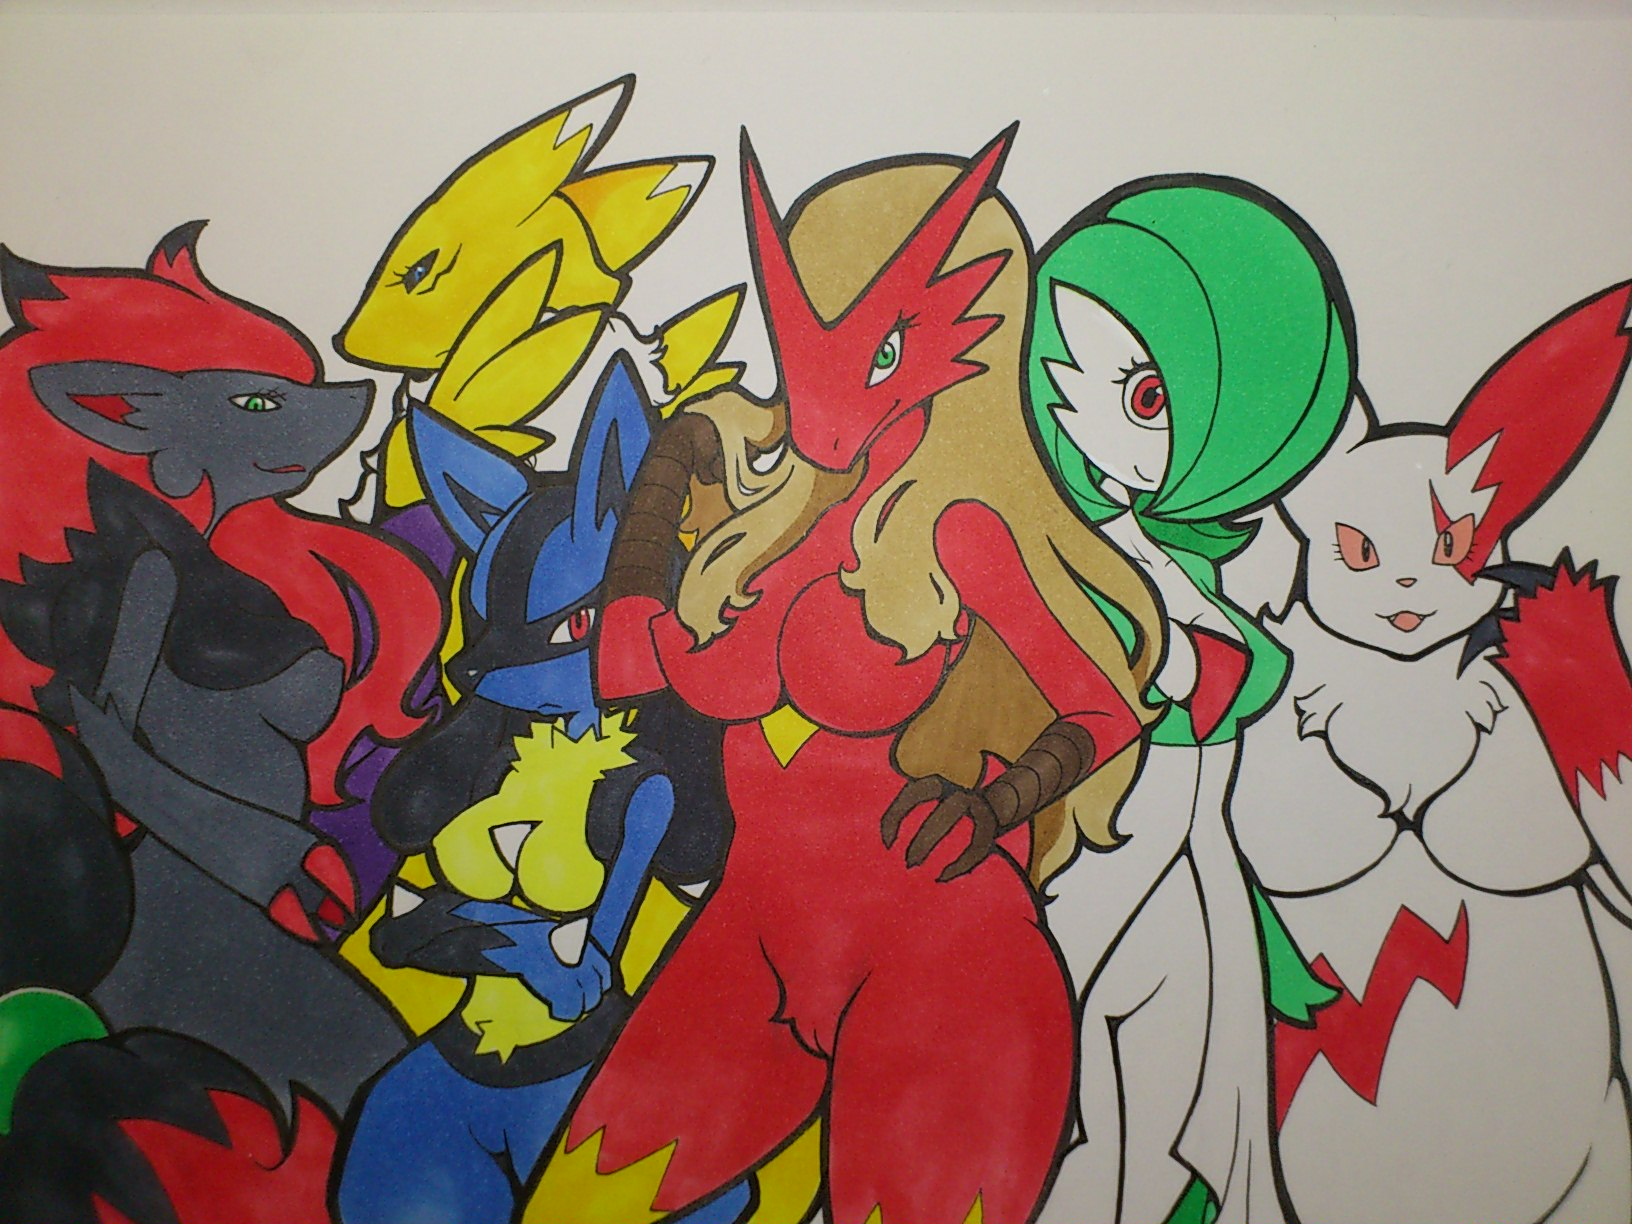 e621 anthro anthrofied avian bird blaziken blue_eyes blue_fur breasts canine claws crossed_arms crossover digimon featureless_breasts female fox fur gardevoir green_eyes group hair hi_res humanoid kewon lucario mammal nintendo nipple_tuf5 pokémon pokémorph pussy red_eyes renamon slightly_chubby traditional_media_(artwork) video_games white_fur wide_hips yellow_fur zangoose zoroark